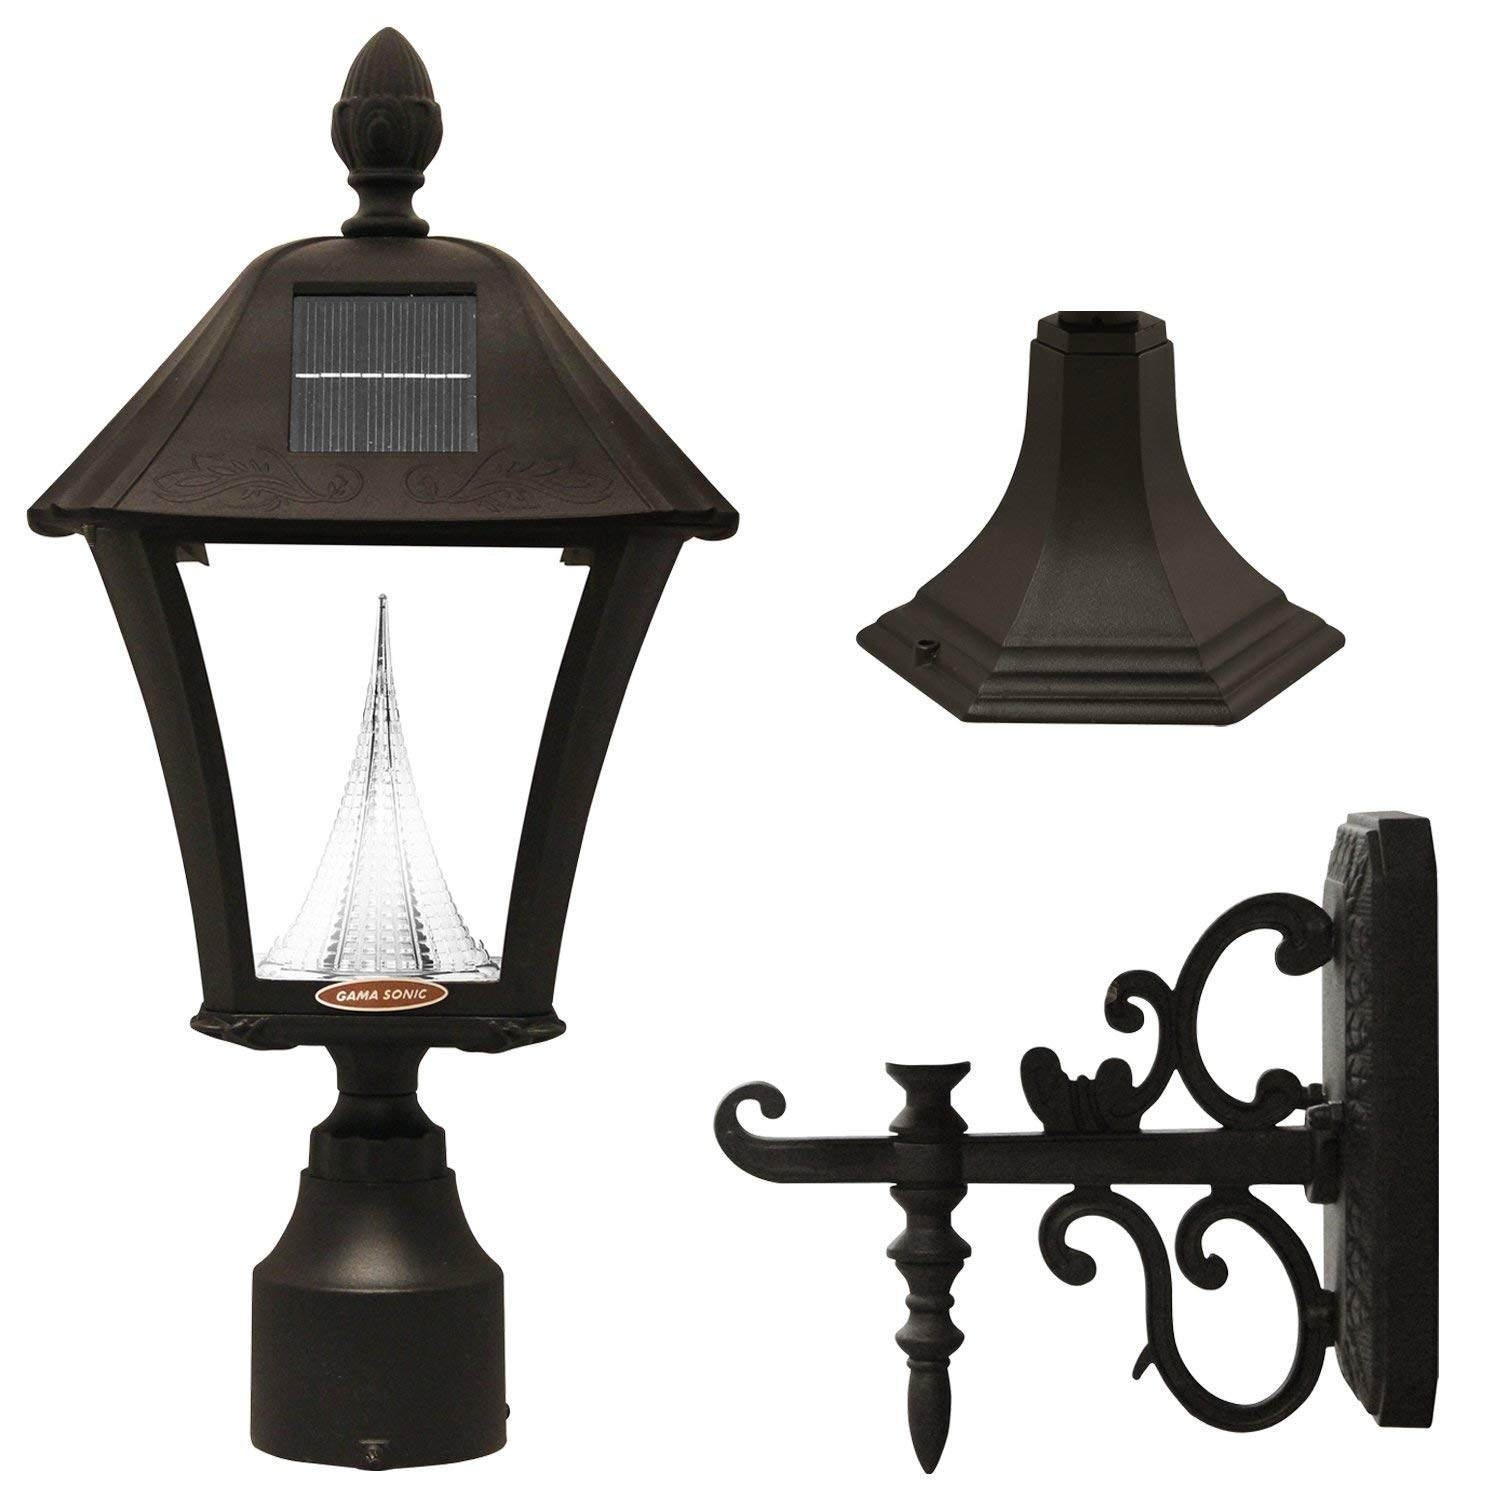 Amazon : Gama Sonic Baytown Solar Outdoor Lamp Gs-106Fpw-B pertaining to Outdoor Pole Lanterns (Image 2 of 20)